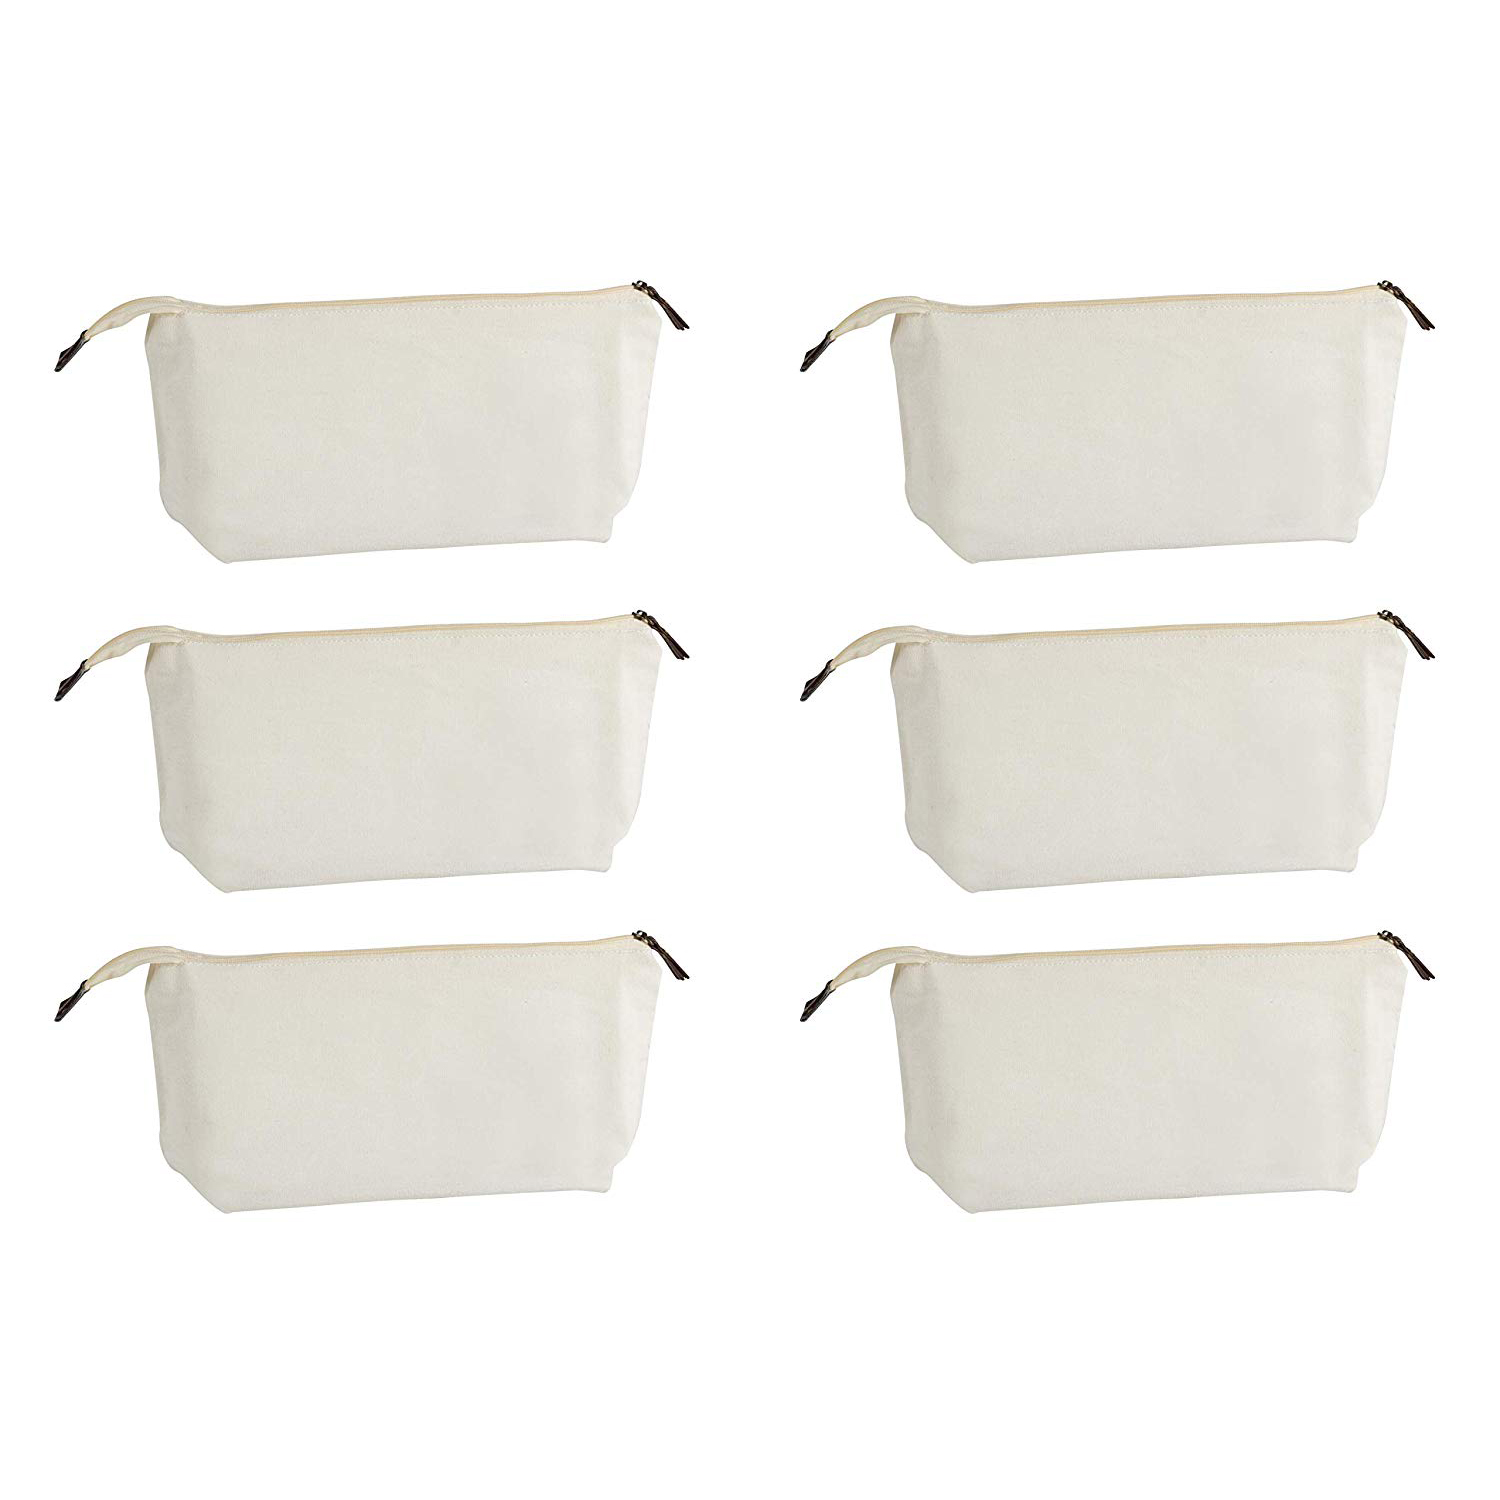 Multipurpose Cosmetic Bag With Zipper - 6-Pack Plain DIY Natural Make-Up Pouch, Cotton Canvas Travel Toiletries Bag,